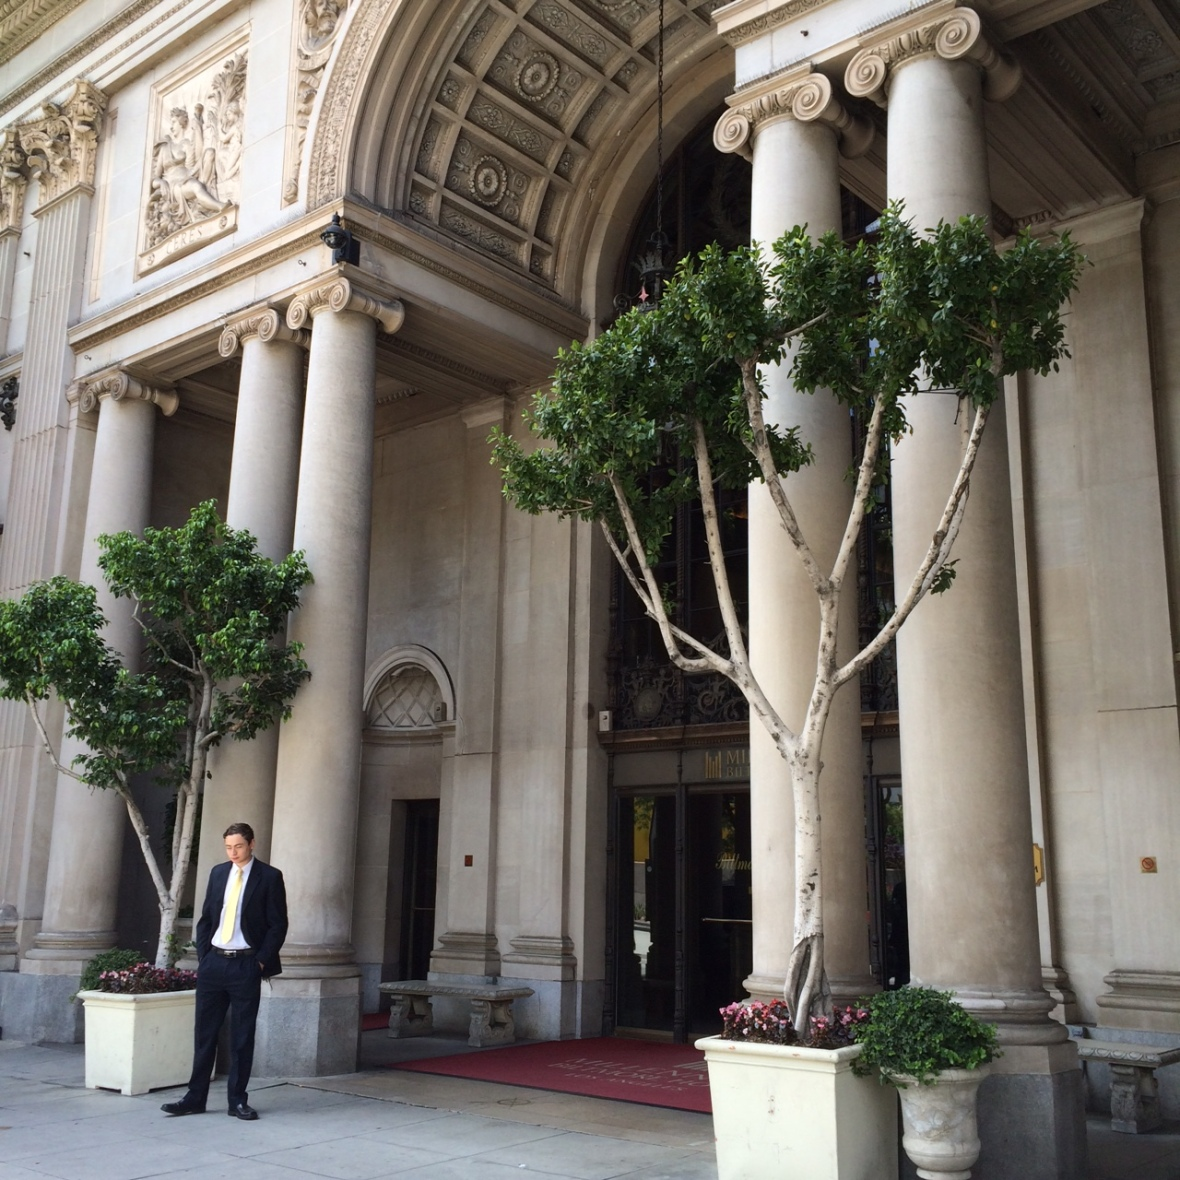 The front entrance of the Biltmore Hotel